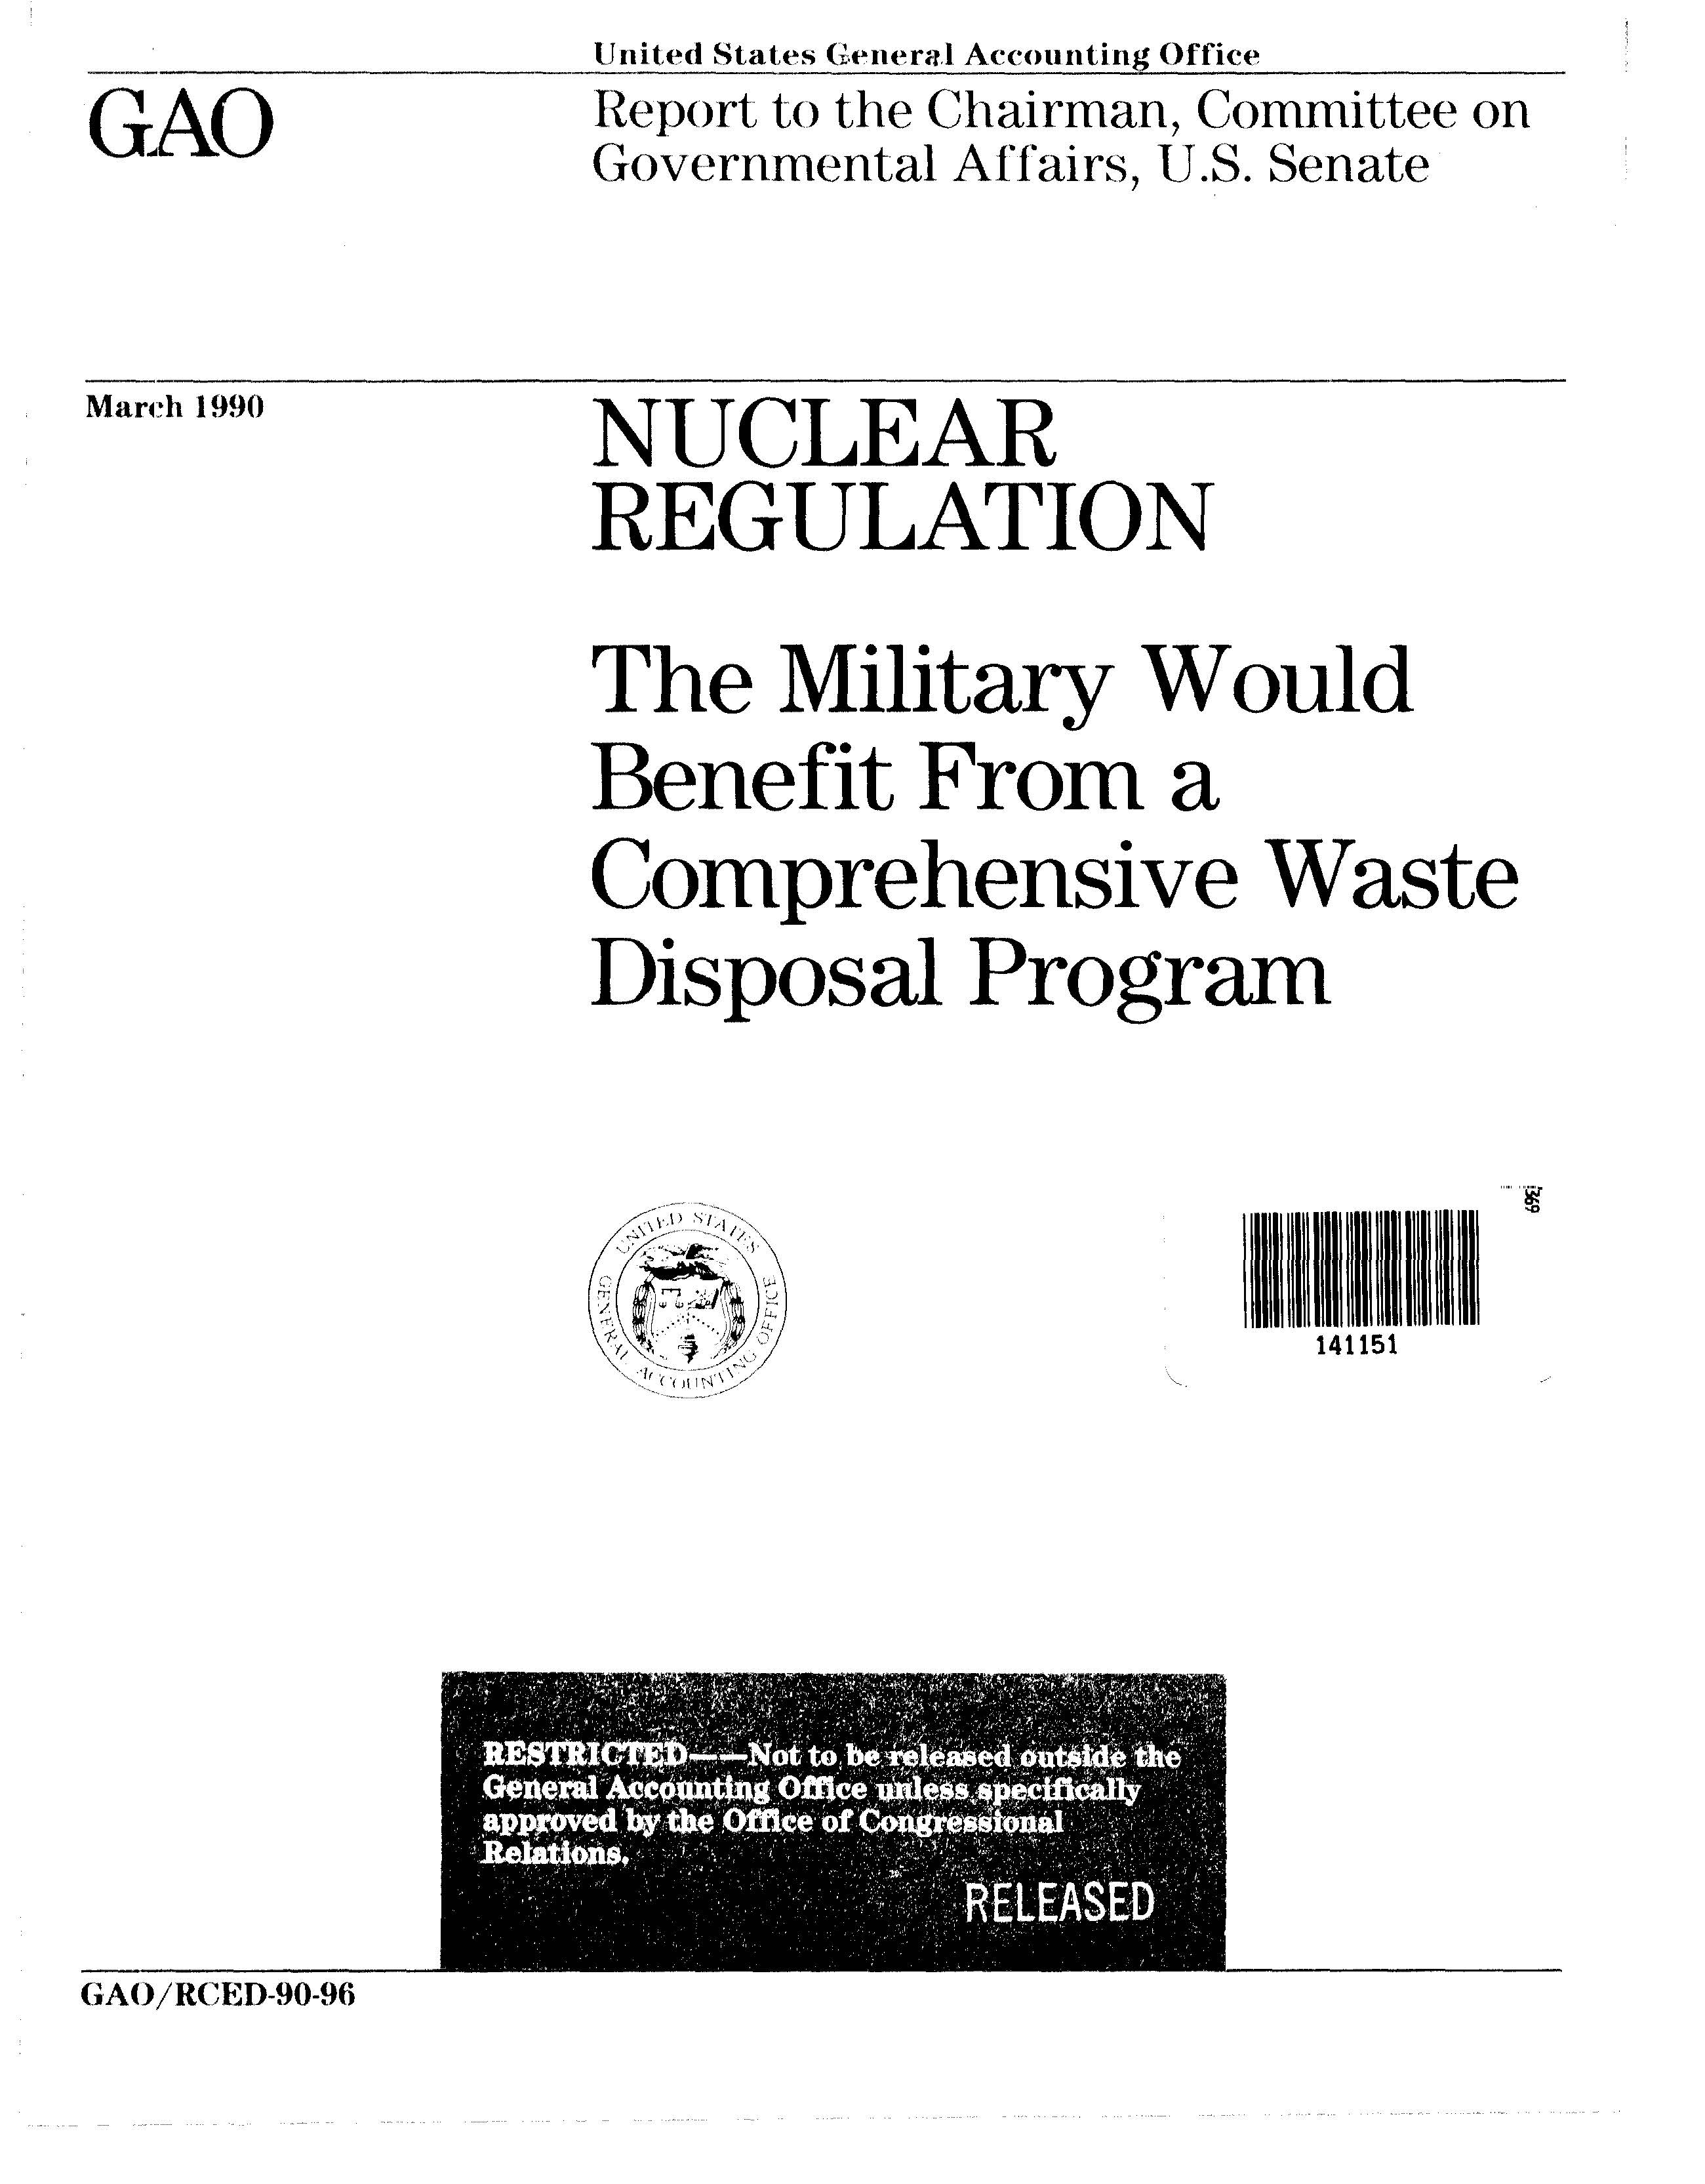 GAO – The Military Would Benefit From a Comprehensive Waste Disposal Program